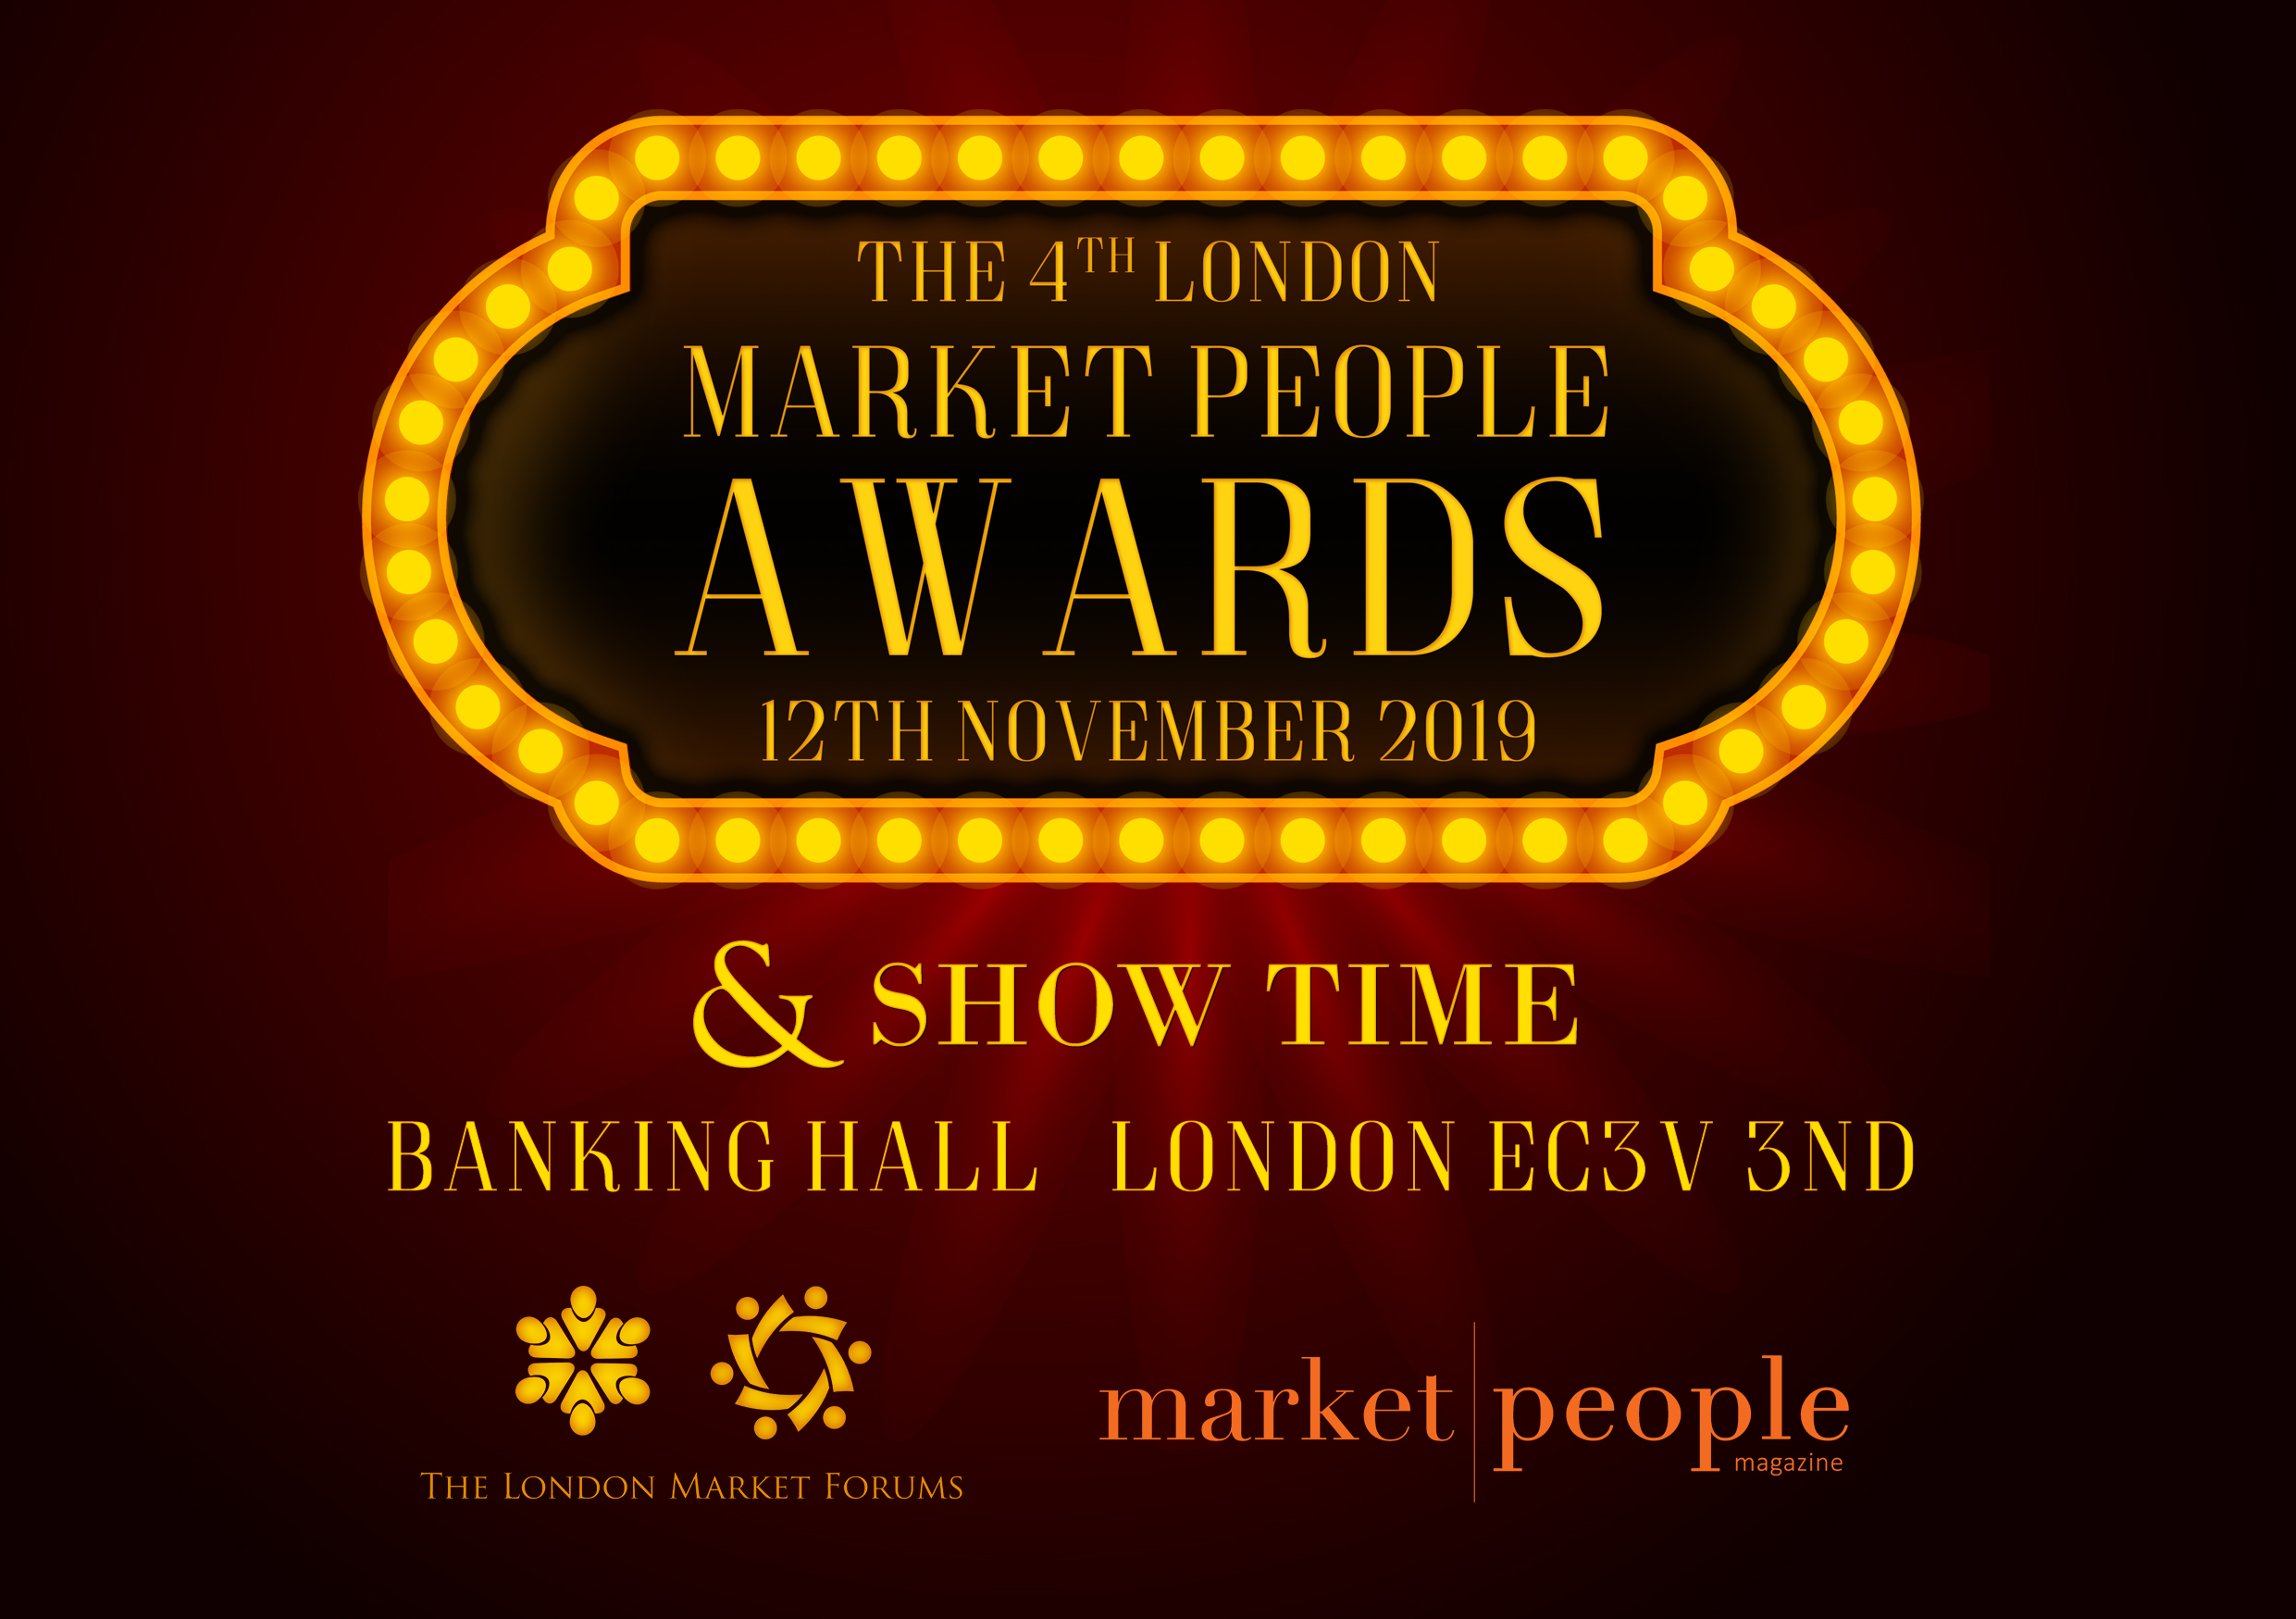 The 4th London Market People Awards - 12th November 2019